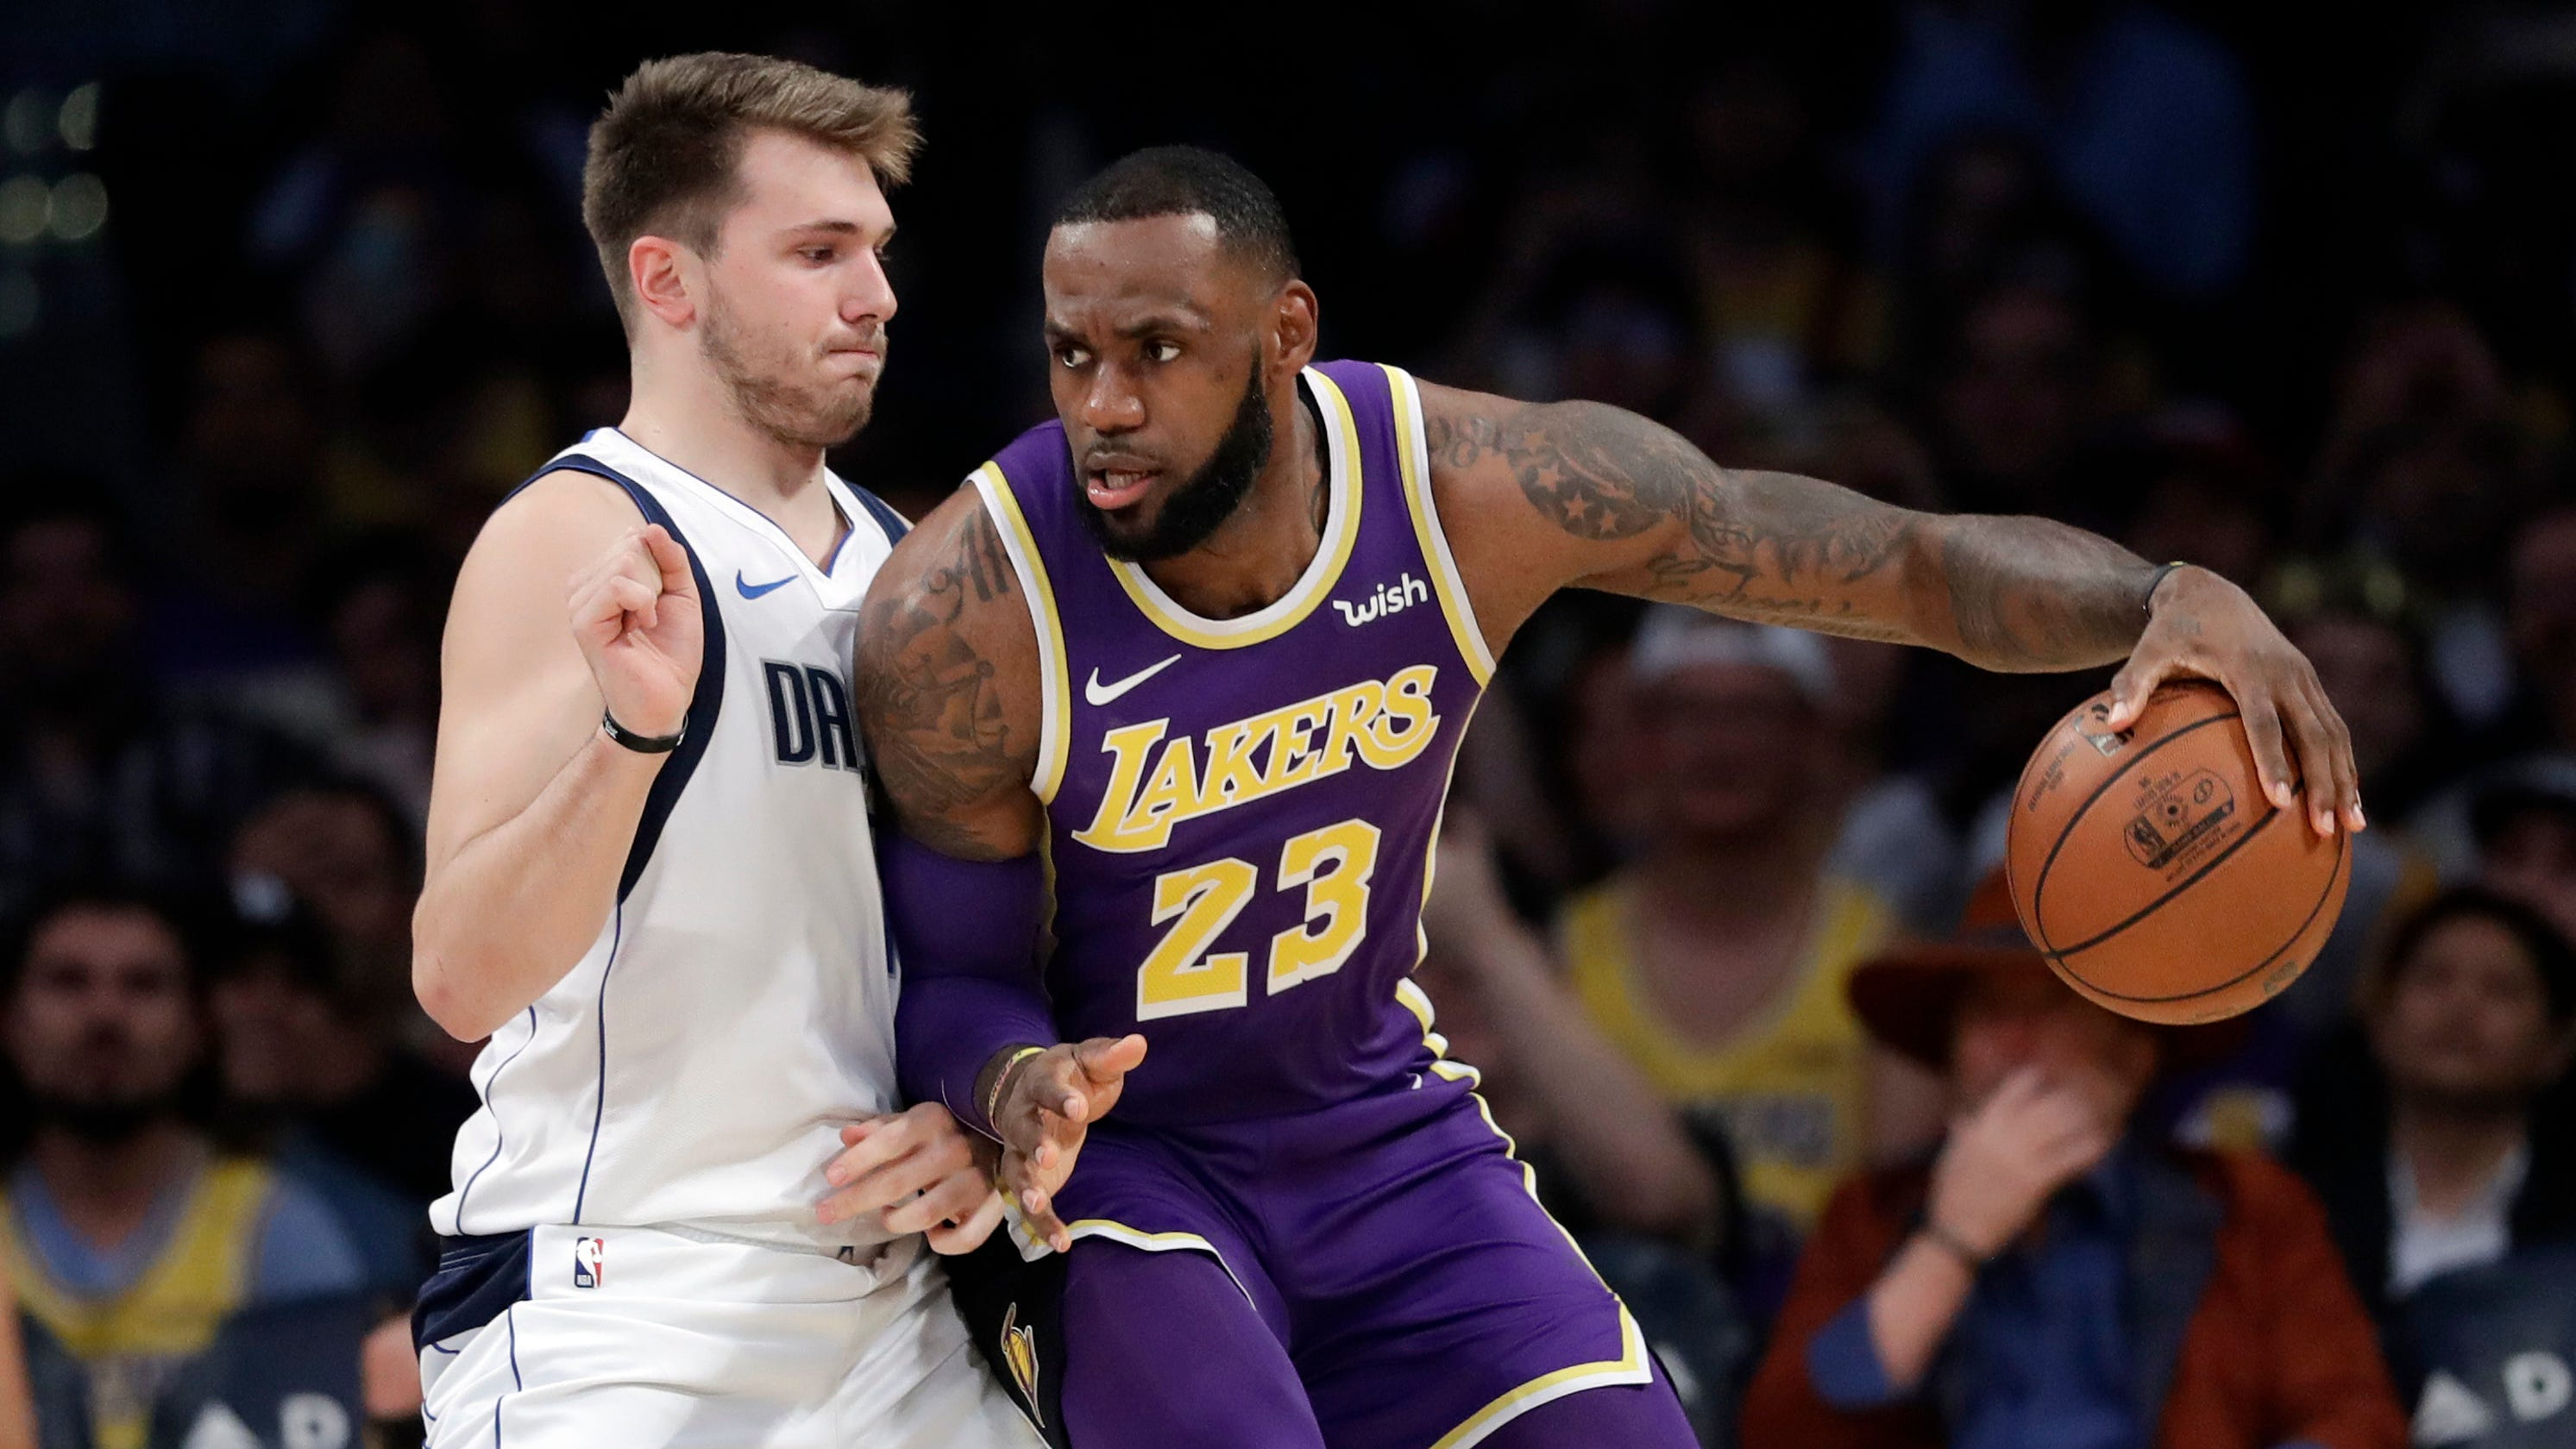 ae7cb3796 Lakers  Disaster averted as L.A. blows 19-point lead